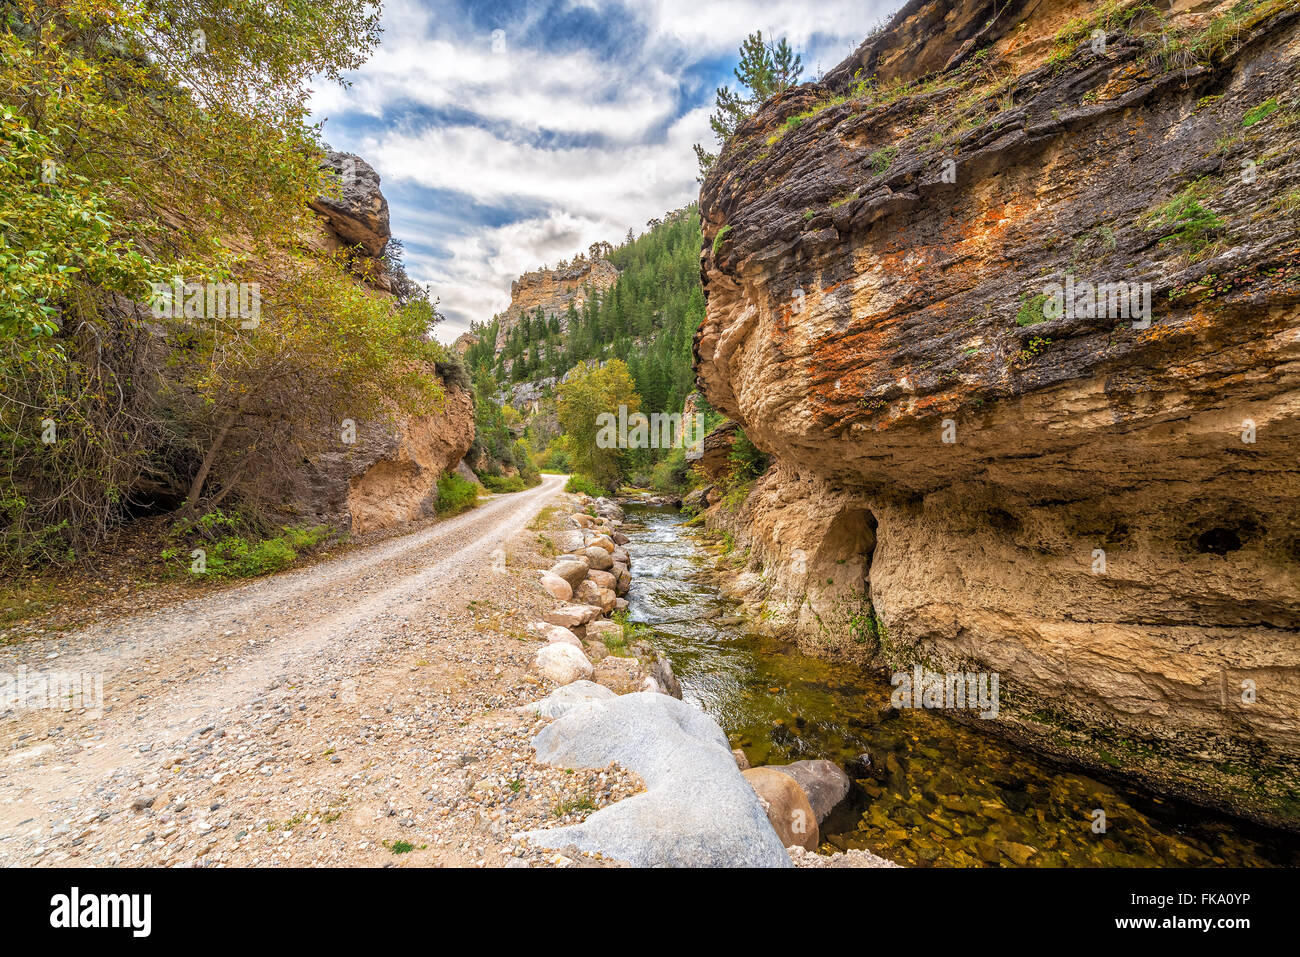 Road through Crazy Woman Canyon in Bighorn National Forest near Buffalo, Wyoming - Stock Image